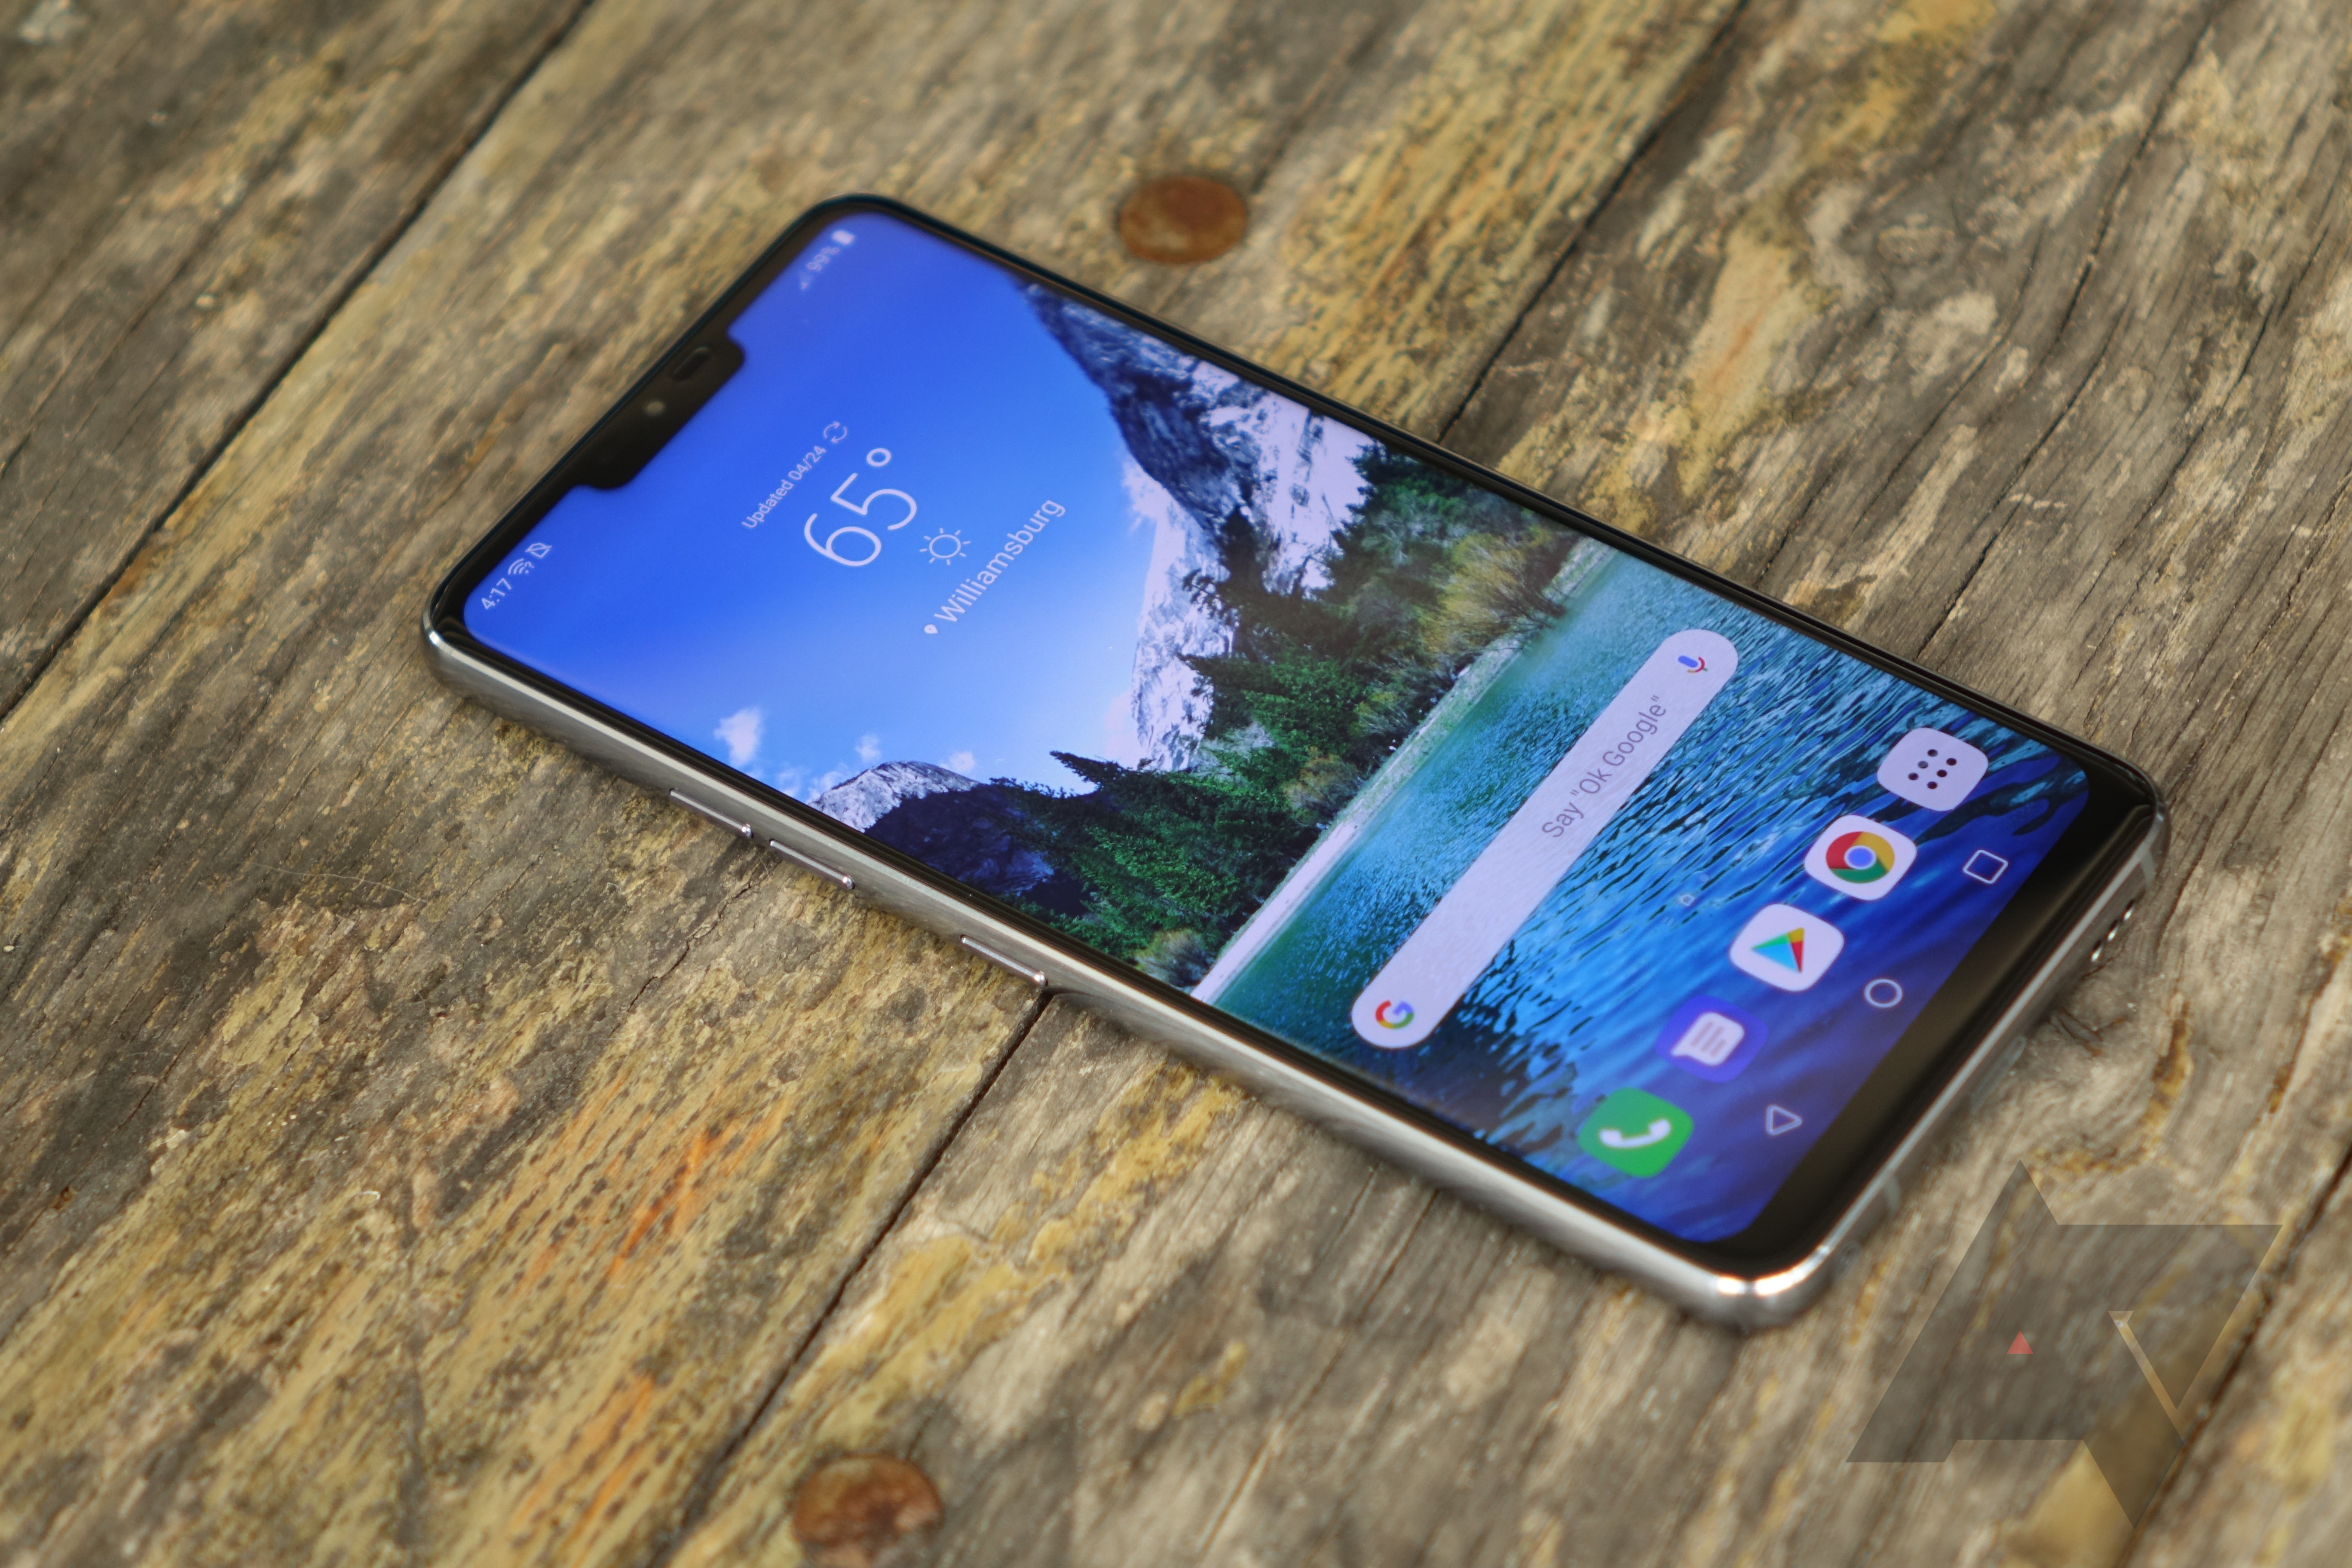 Update: Now on Amazon] LG G7 ThinQ now available for purchase in the